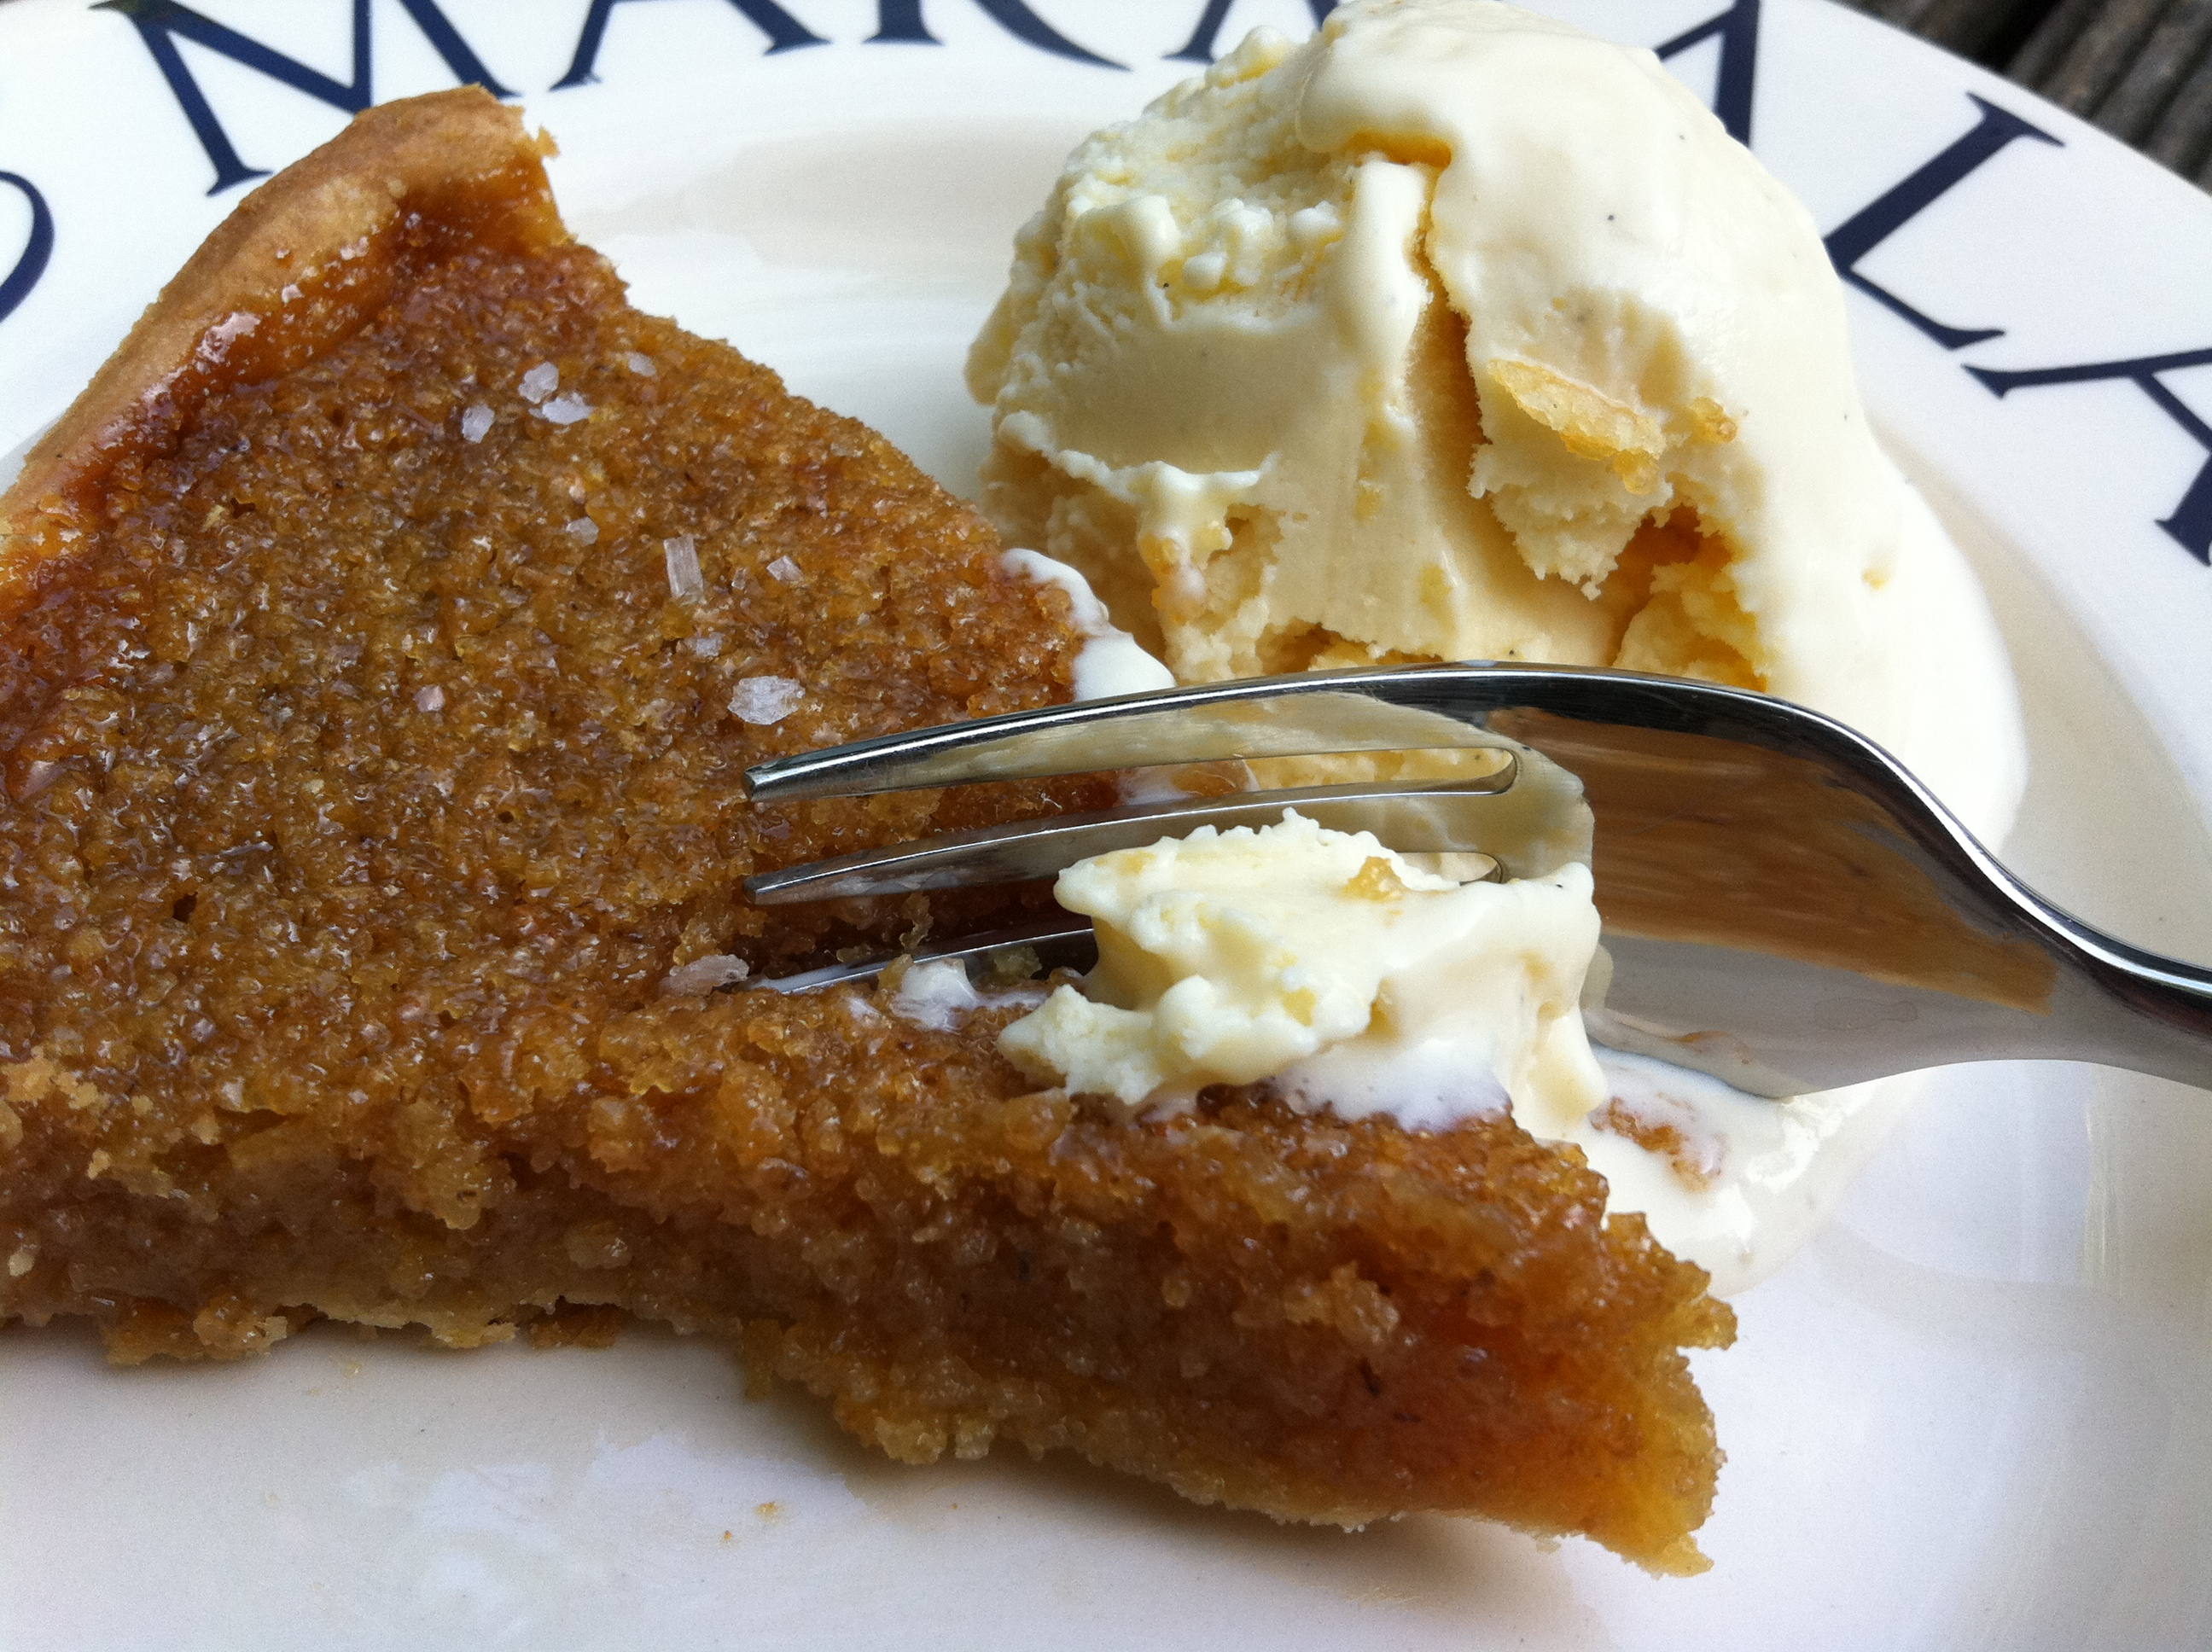 homemade_treacle_tart_ice_cream